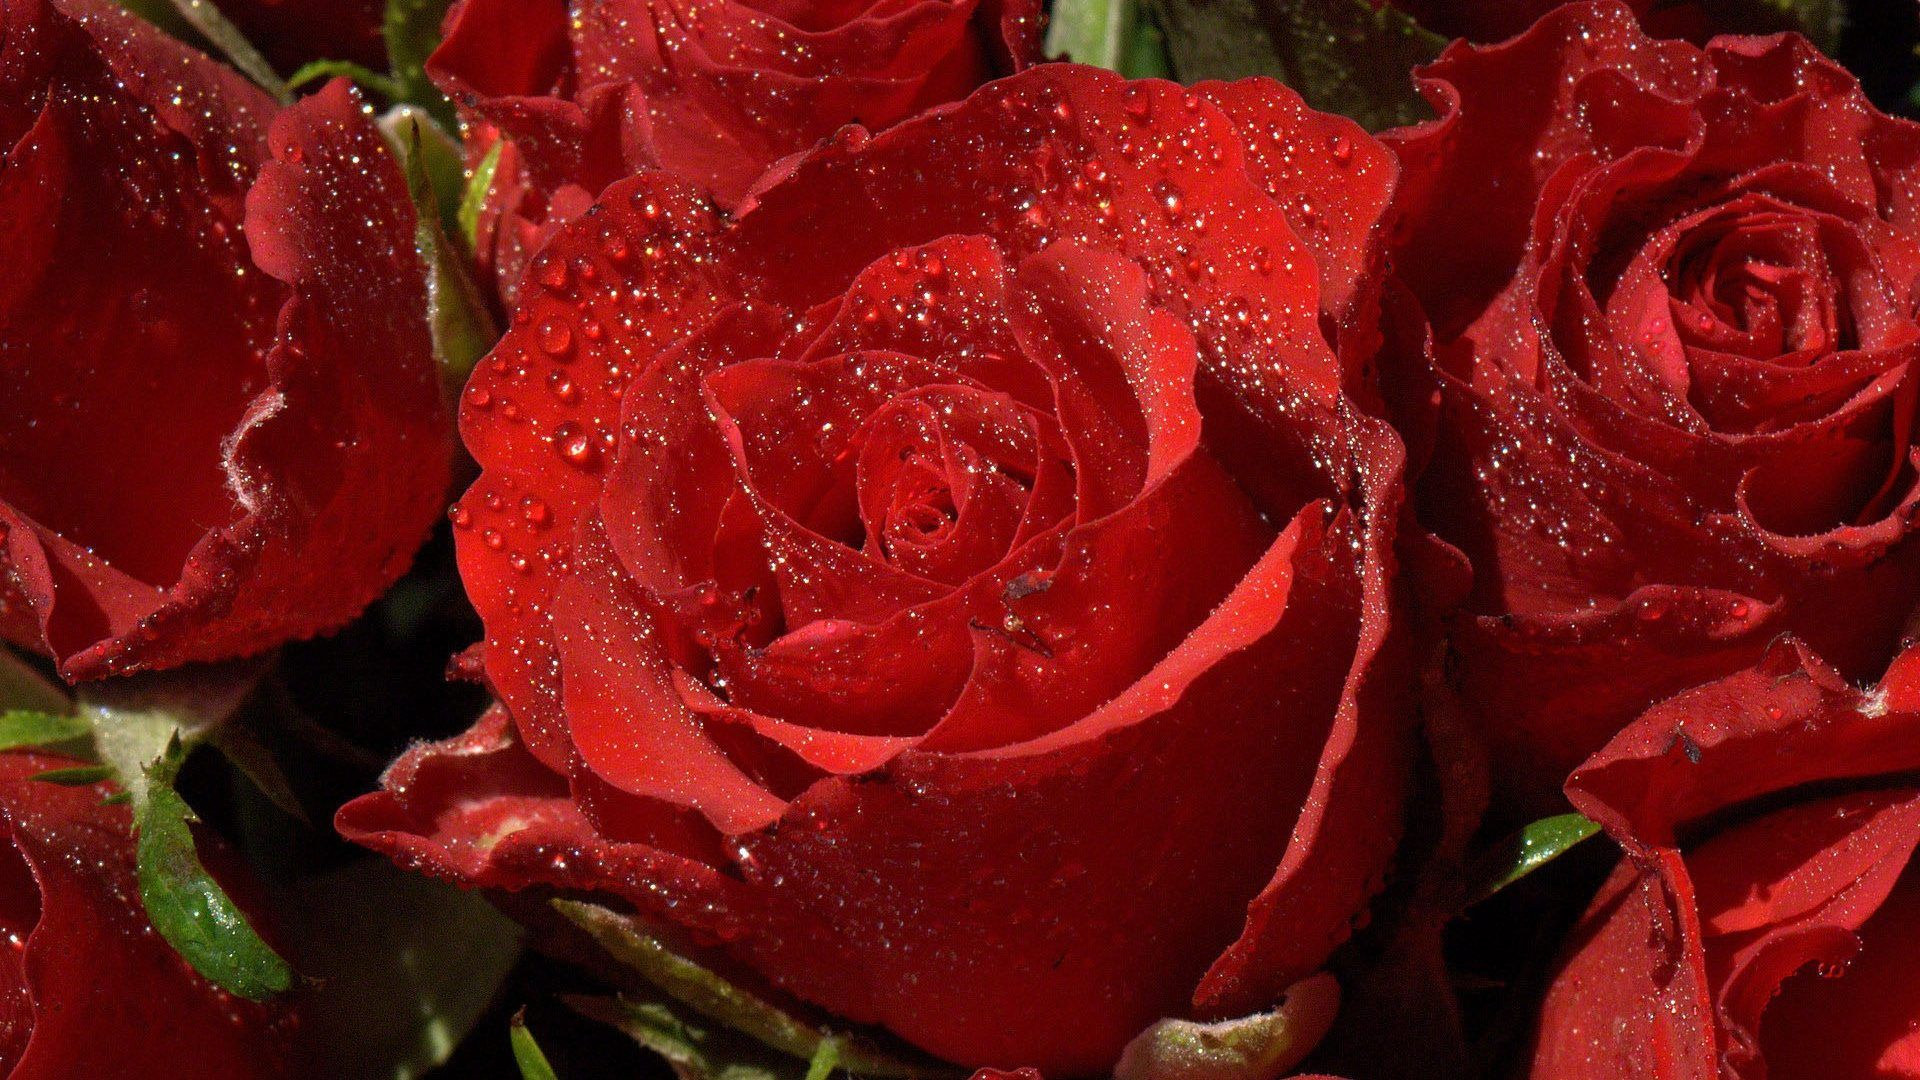 Xinature Com Red Heart Love Roses Drops Beauty Nature Beautiful Tears Flowers Rain Photography Lovely Red Flower Wallpaper Rose Flower Wallpaper Gulab Flower